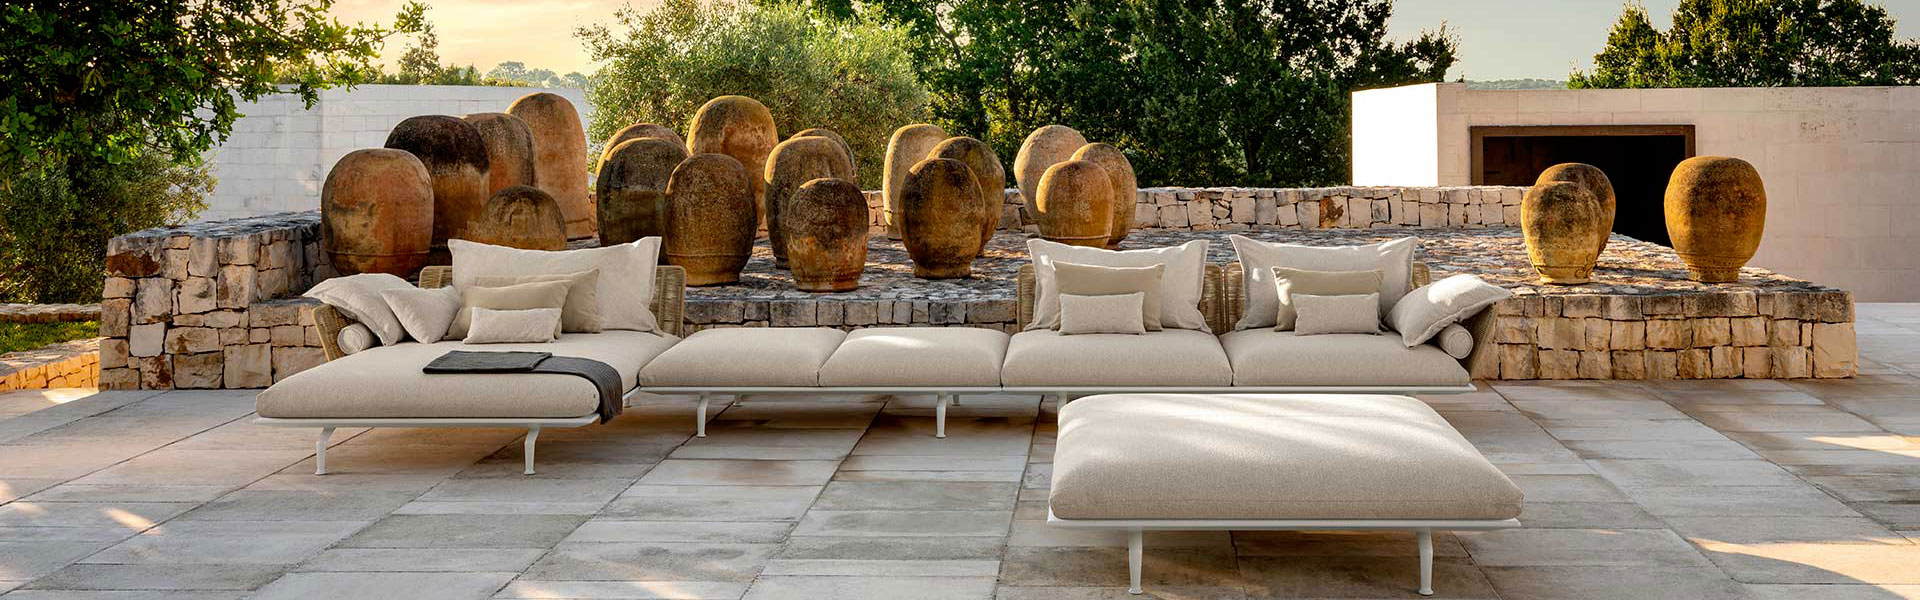 Italian garden furniture: Talenti  Outdoor Living